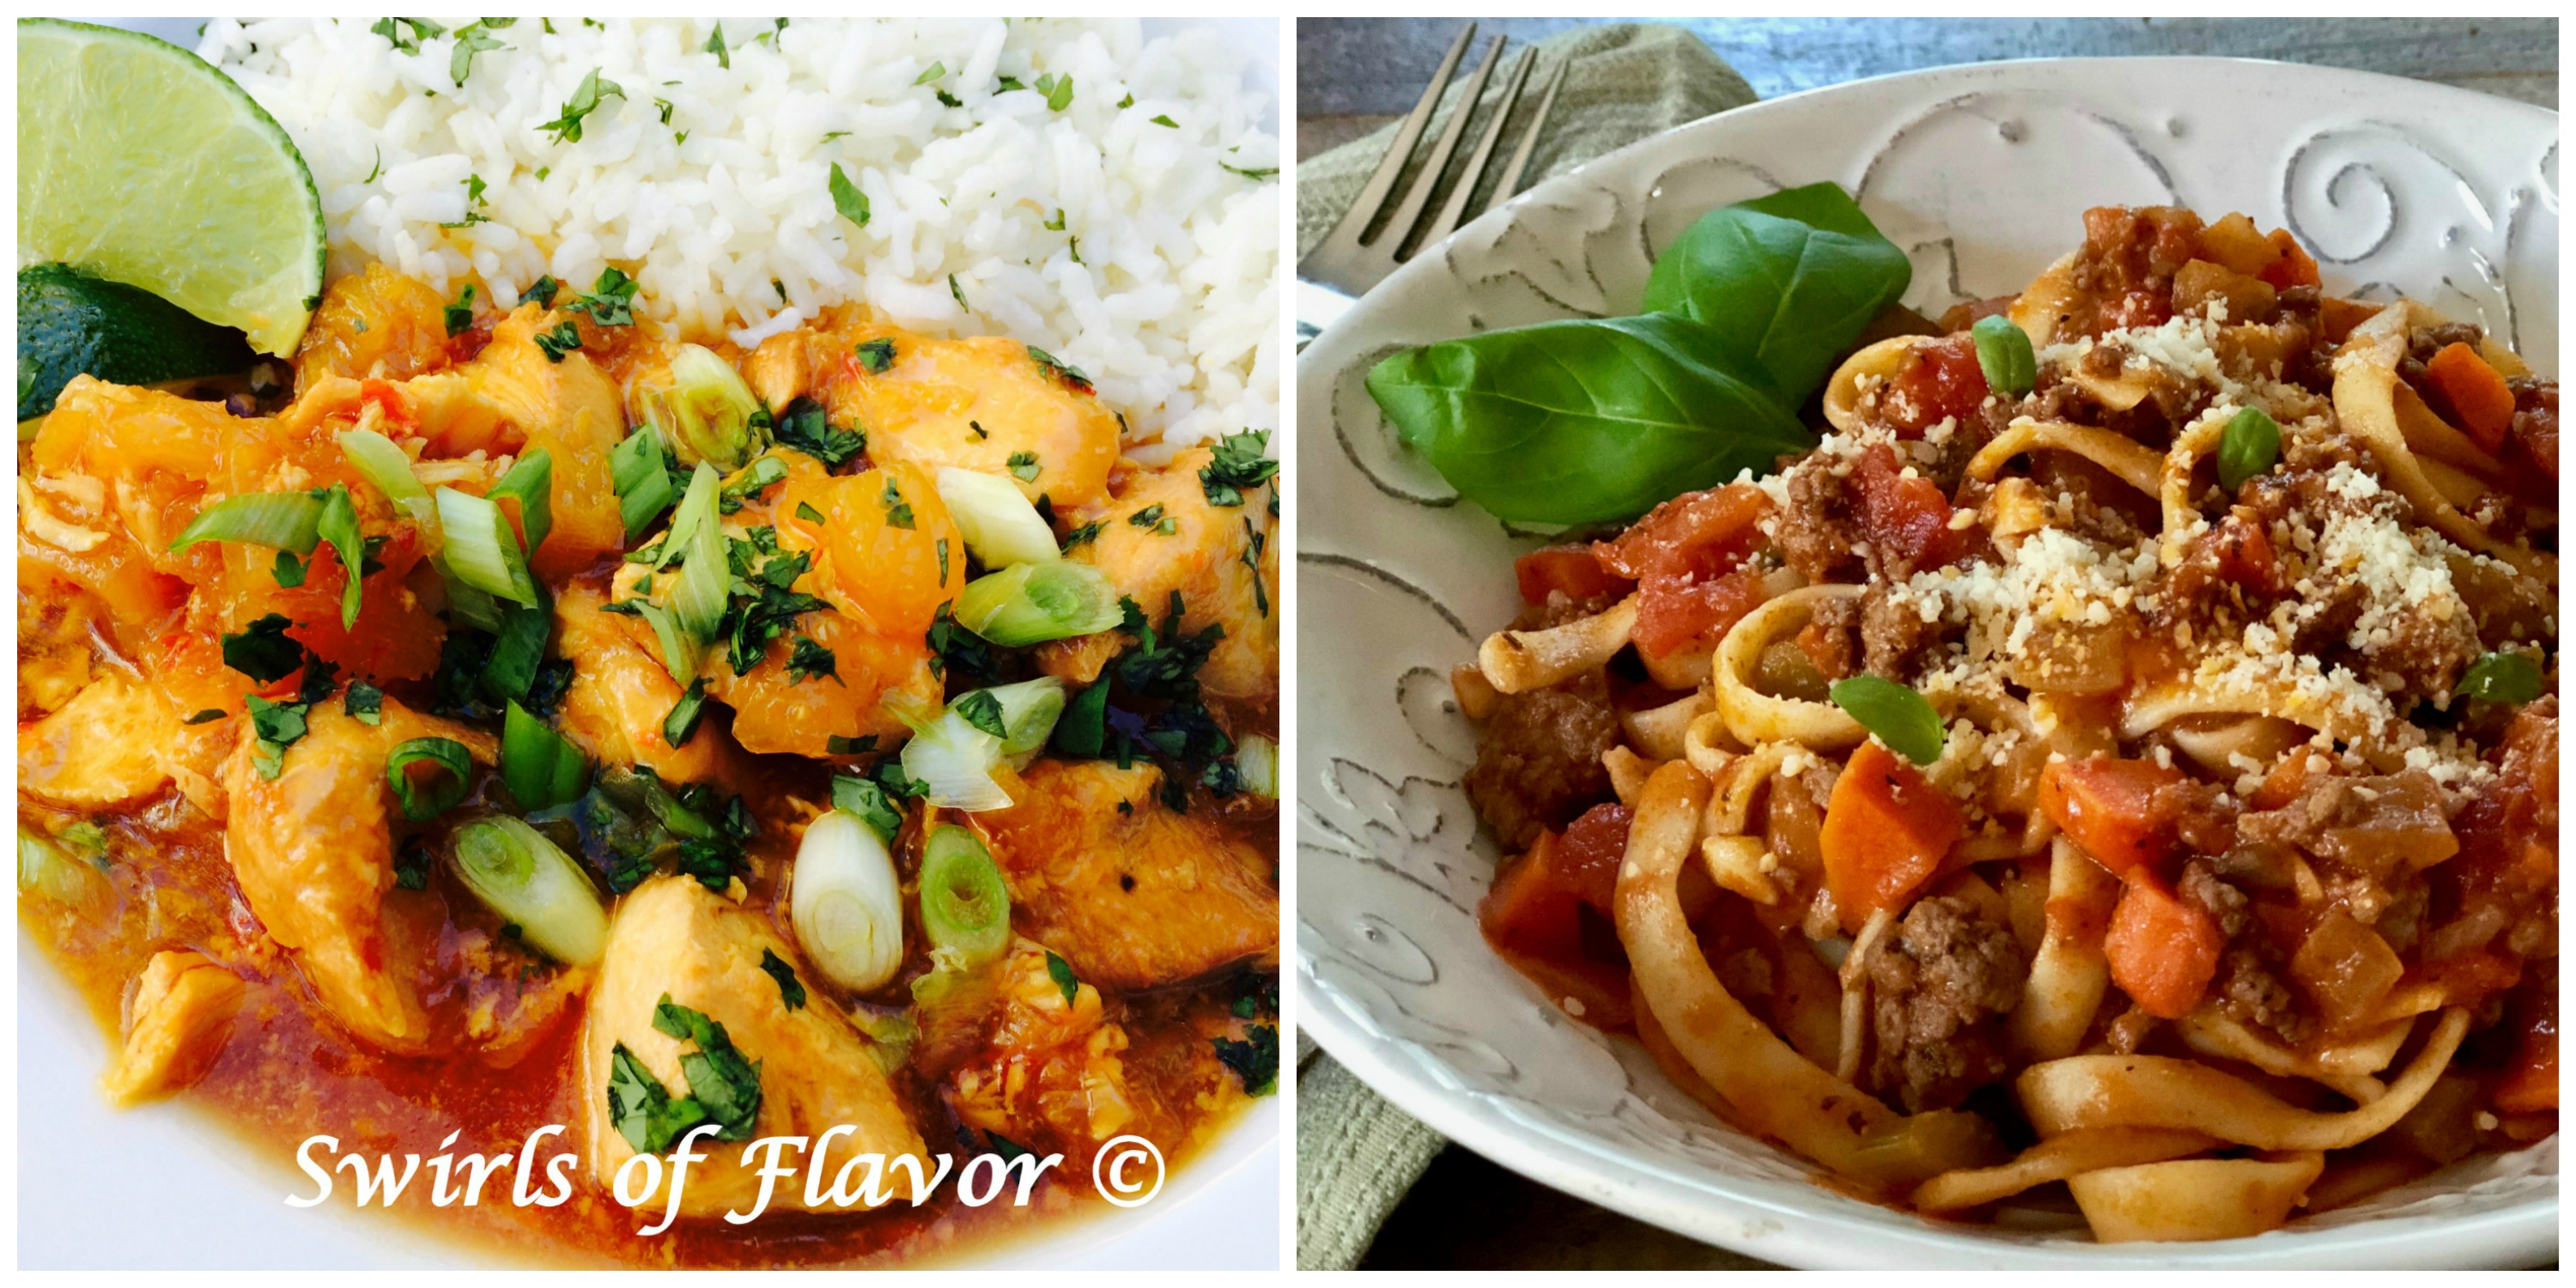 Pineapple Chili Chicken and Fettuccine Bolognese